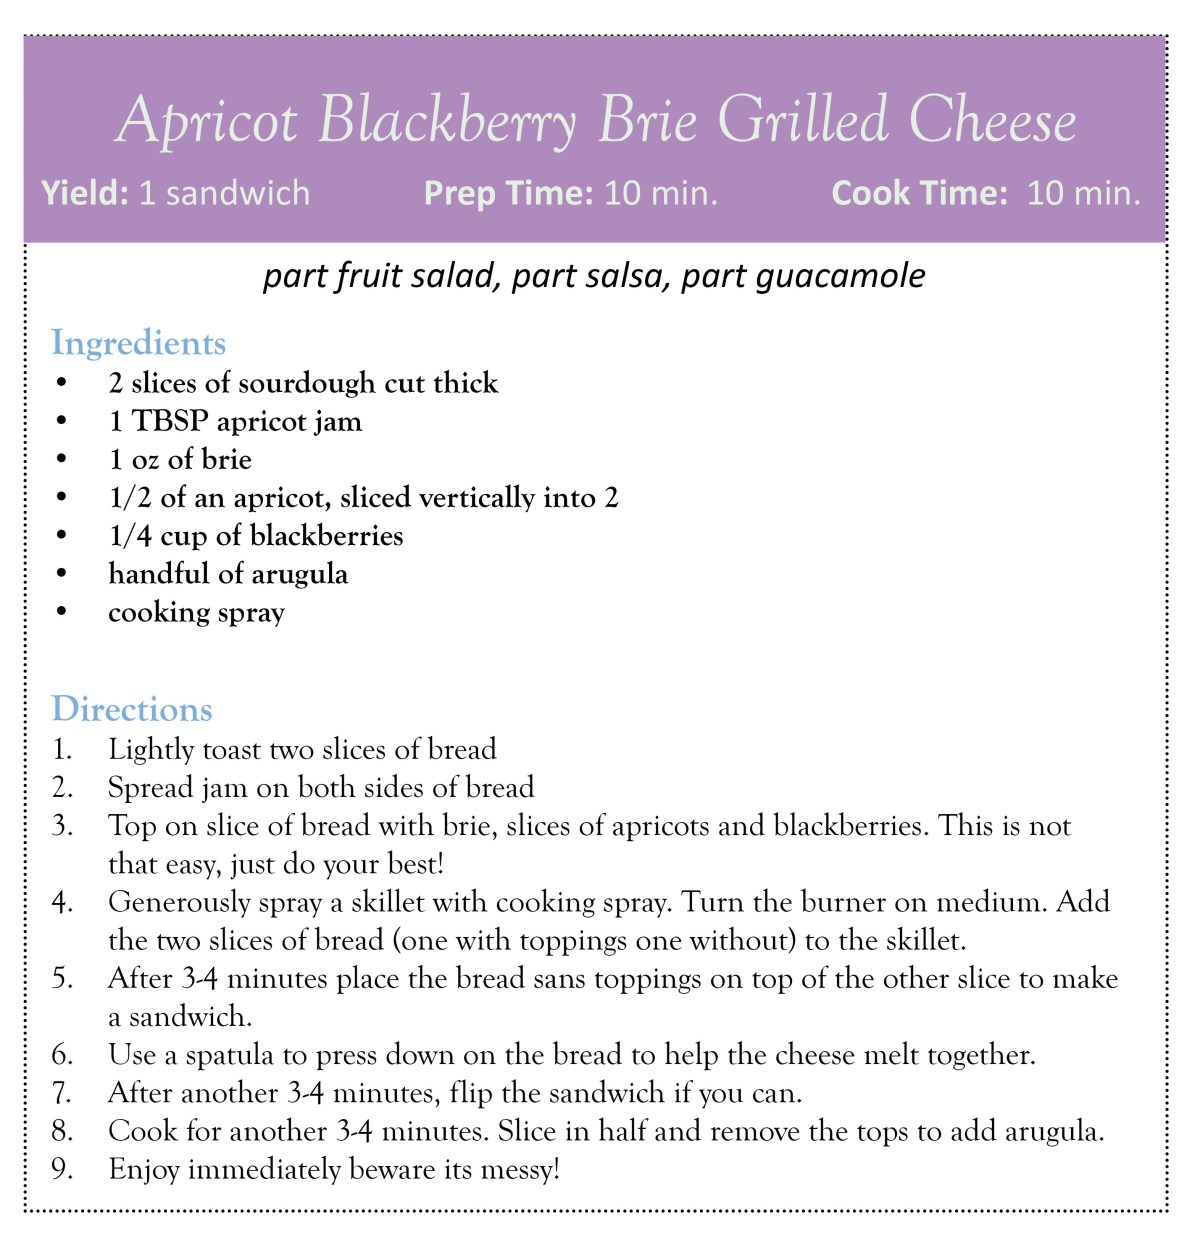 Apricot Blackberry Brie Grilled Cheese.jpg